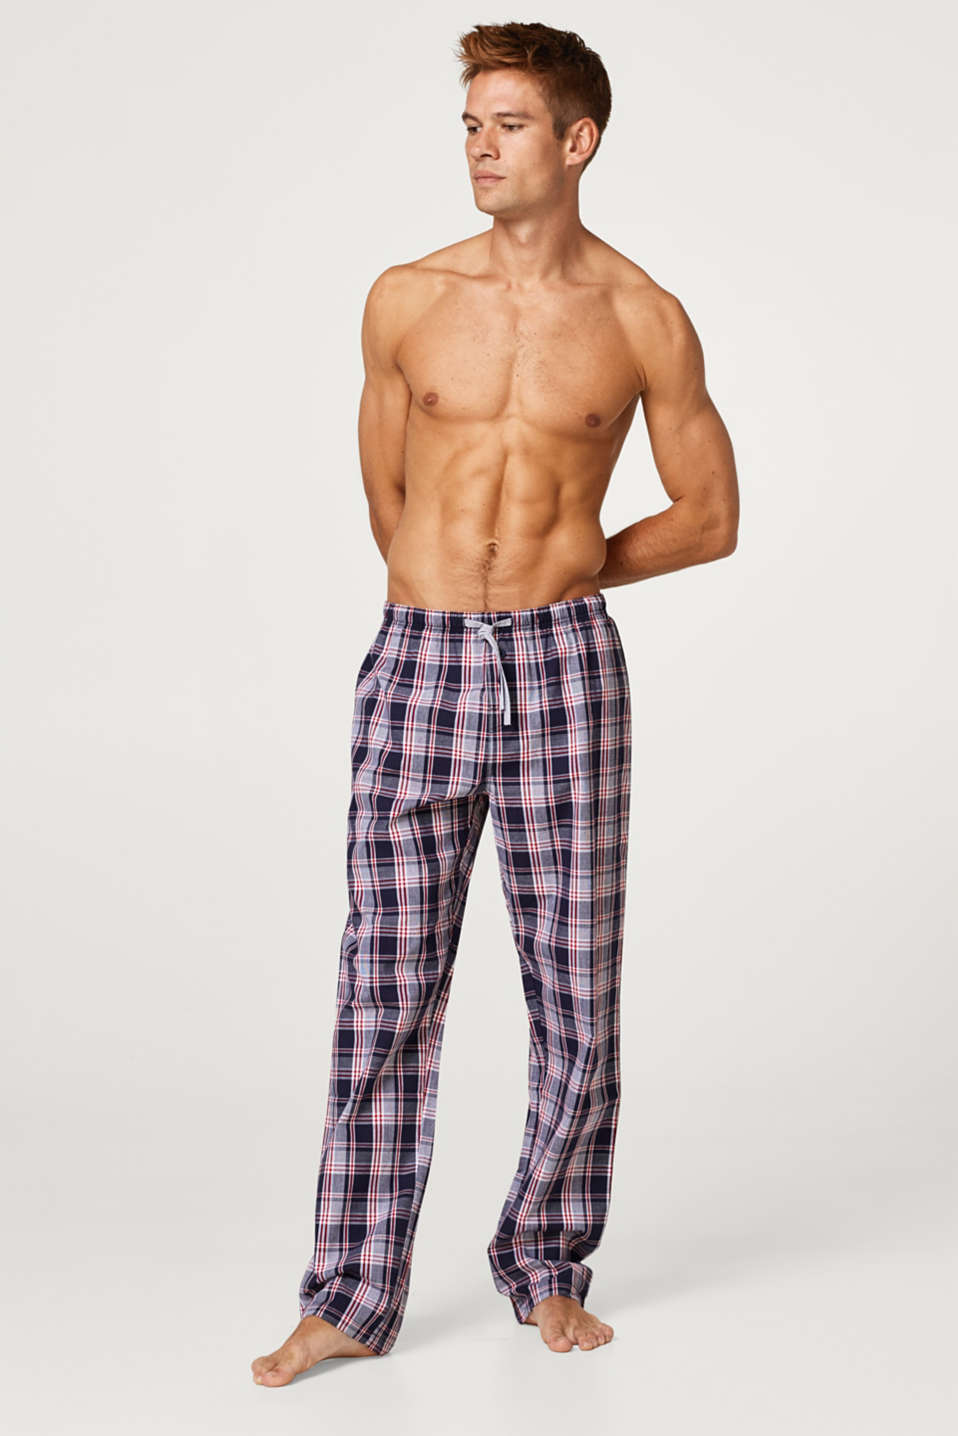 Esprit - Pyjama bottoms with a check pattern, 100% cotton